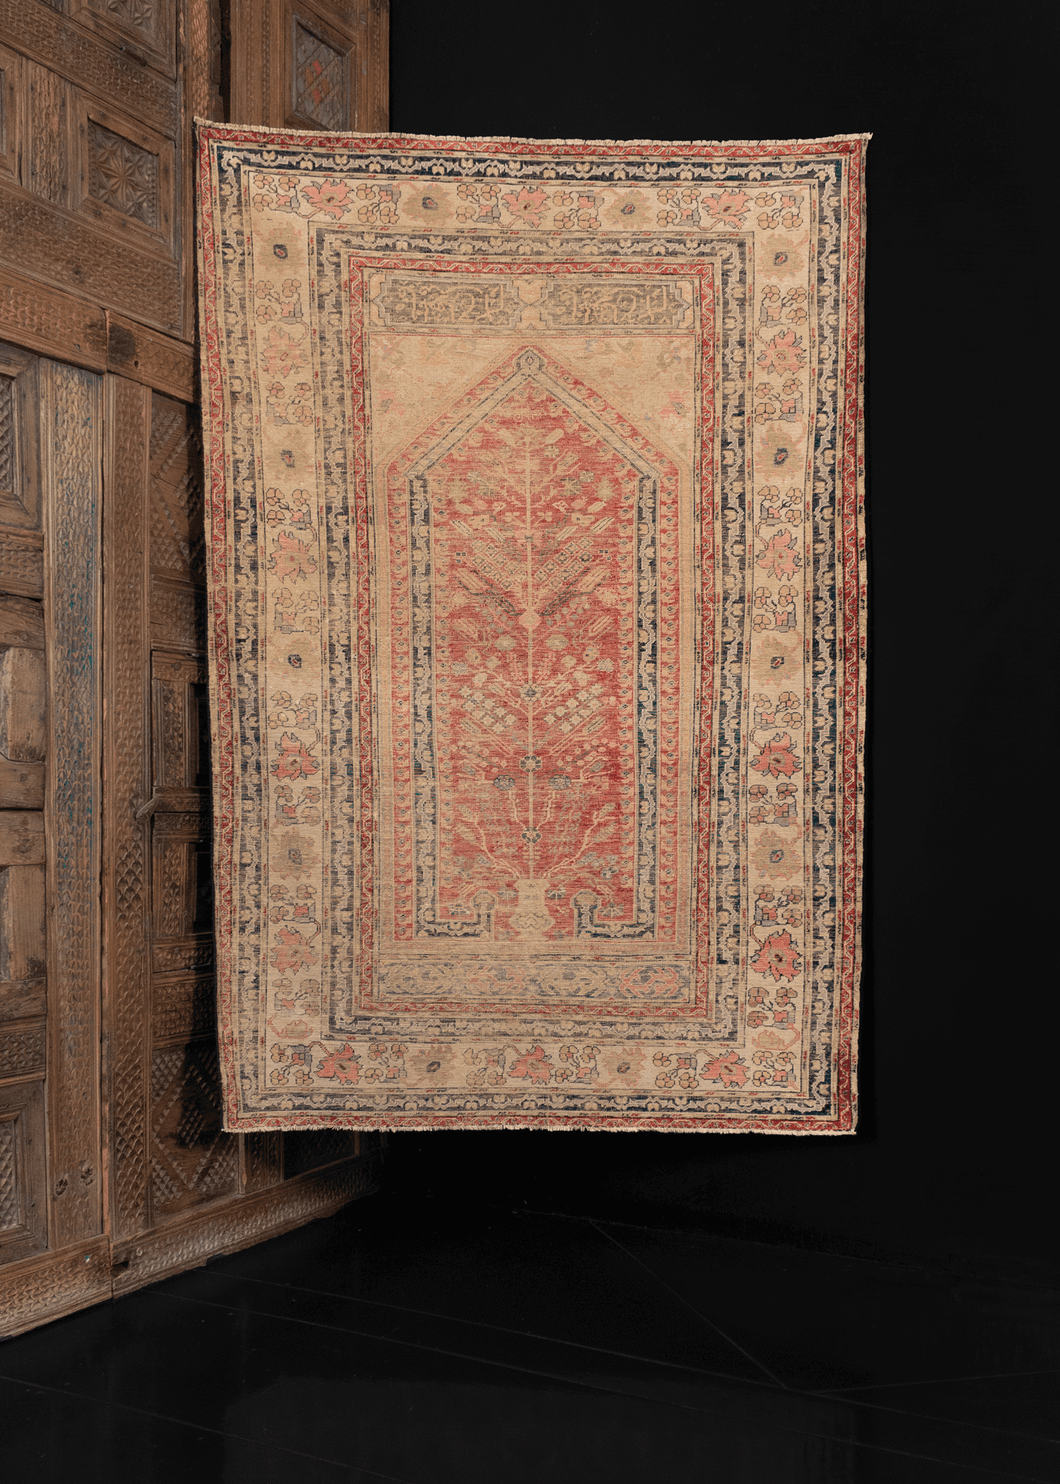 Mid century silk Kayseri rug from Turkey with ornate prayer niche and curvilinear floral border